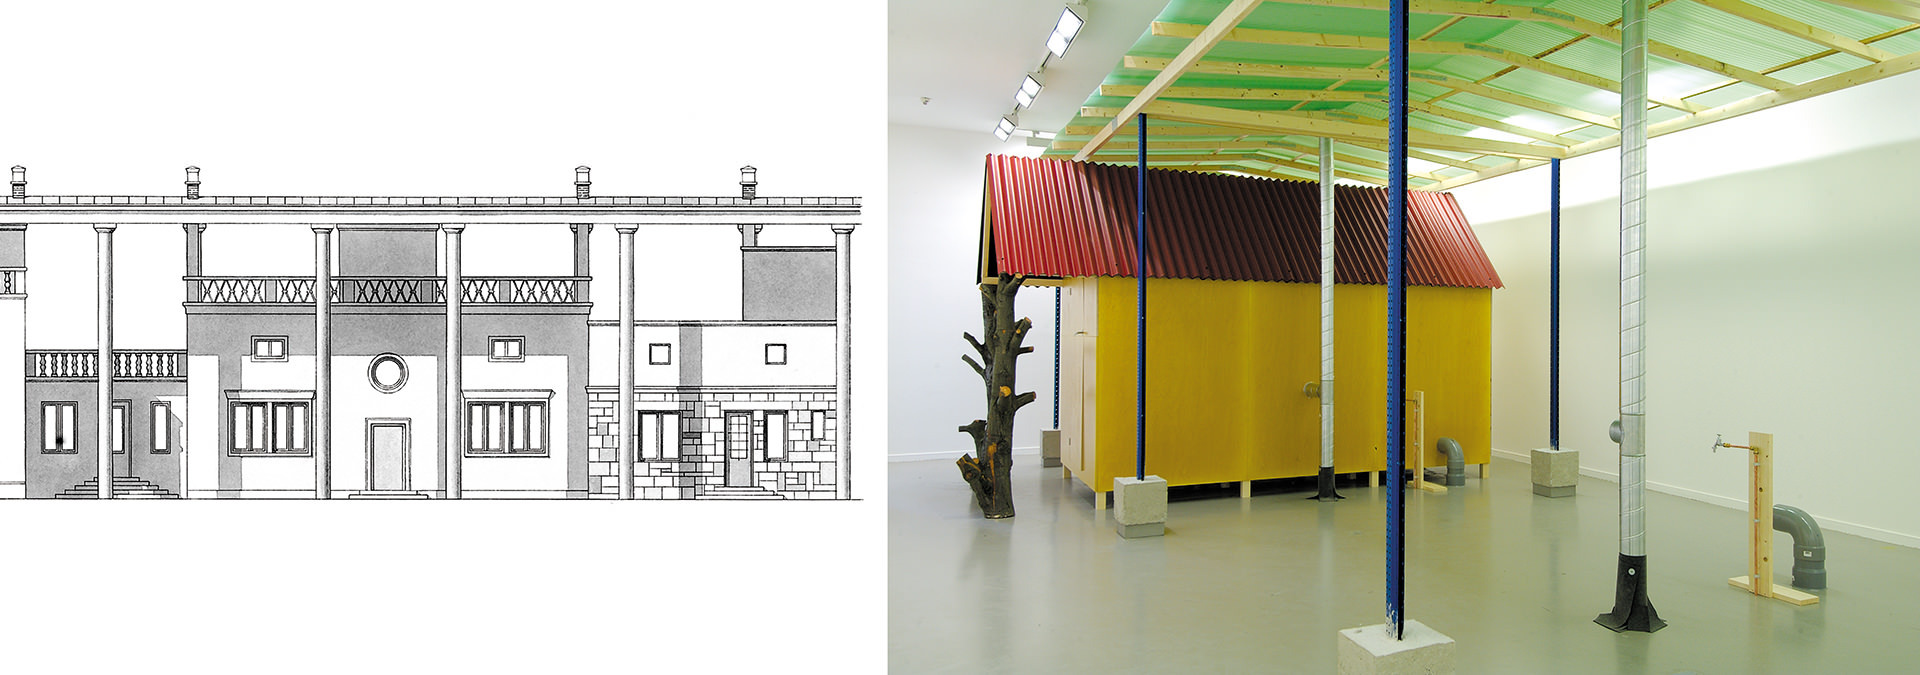 """Ljubljana under a Common Roof"" was a case study based on the Ple?nik model. De Appel Foundation for Contemporary Art, Amsterdam, 2004. (Images courtesy the artist)"